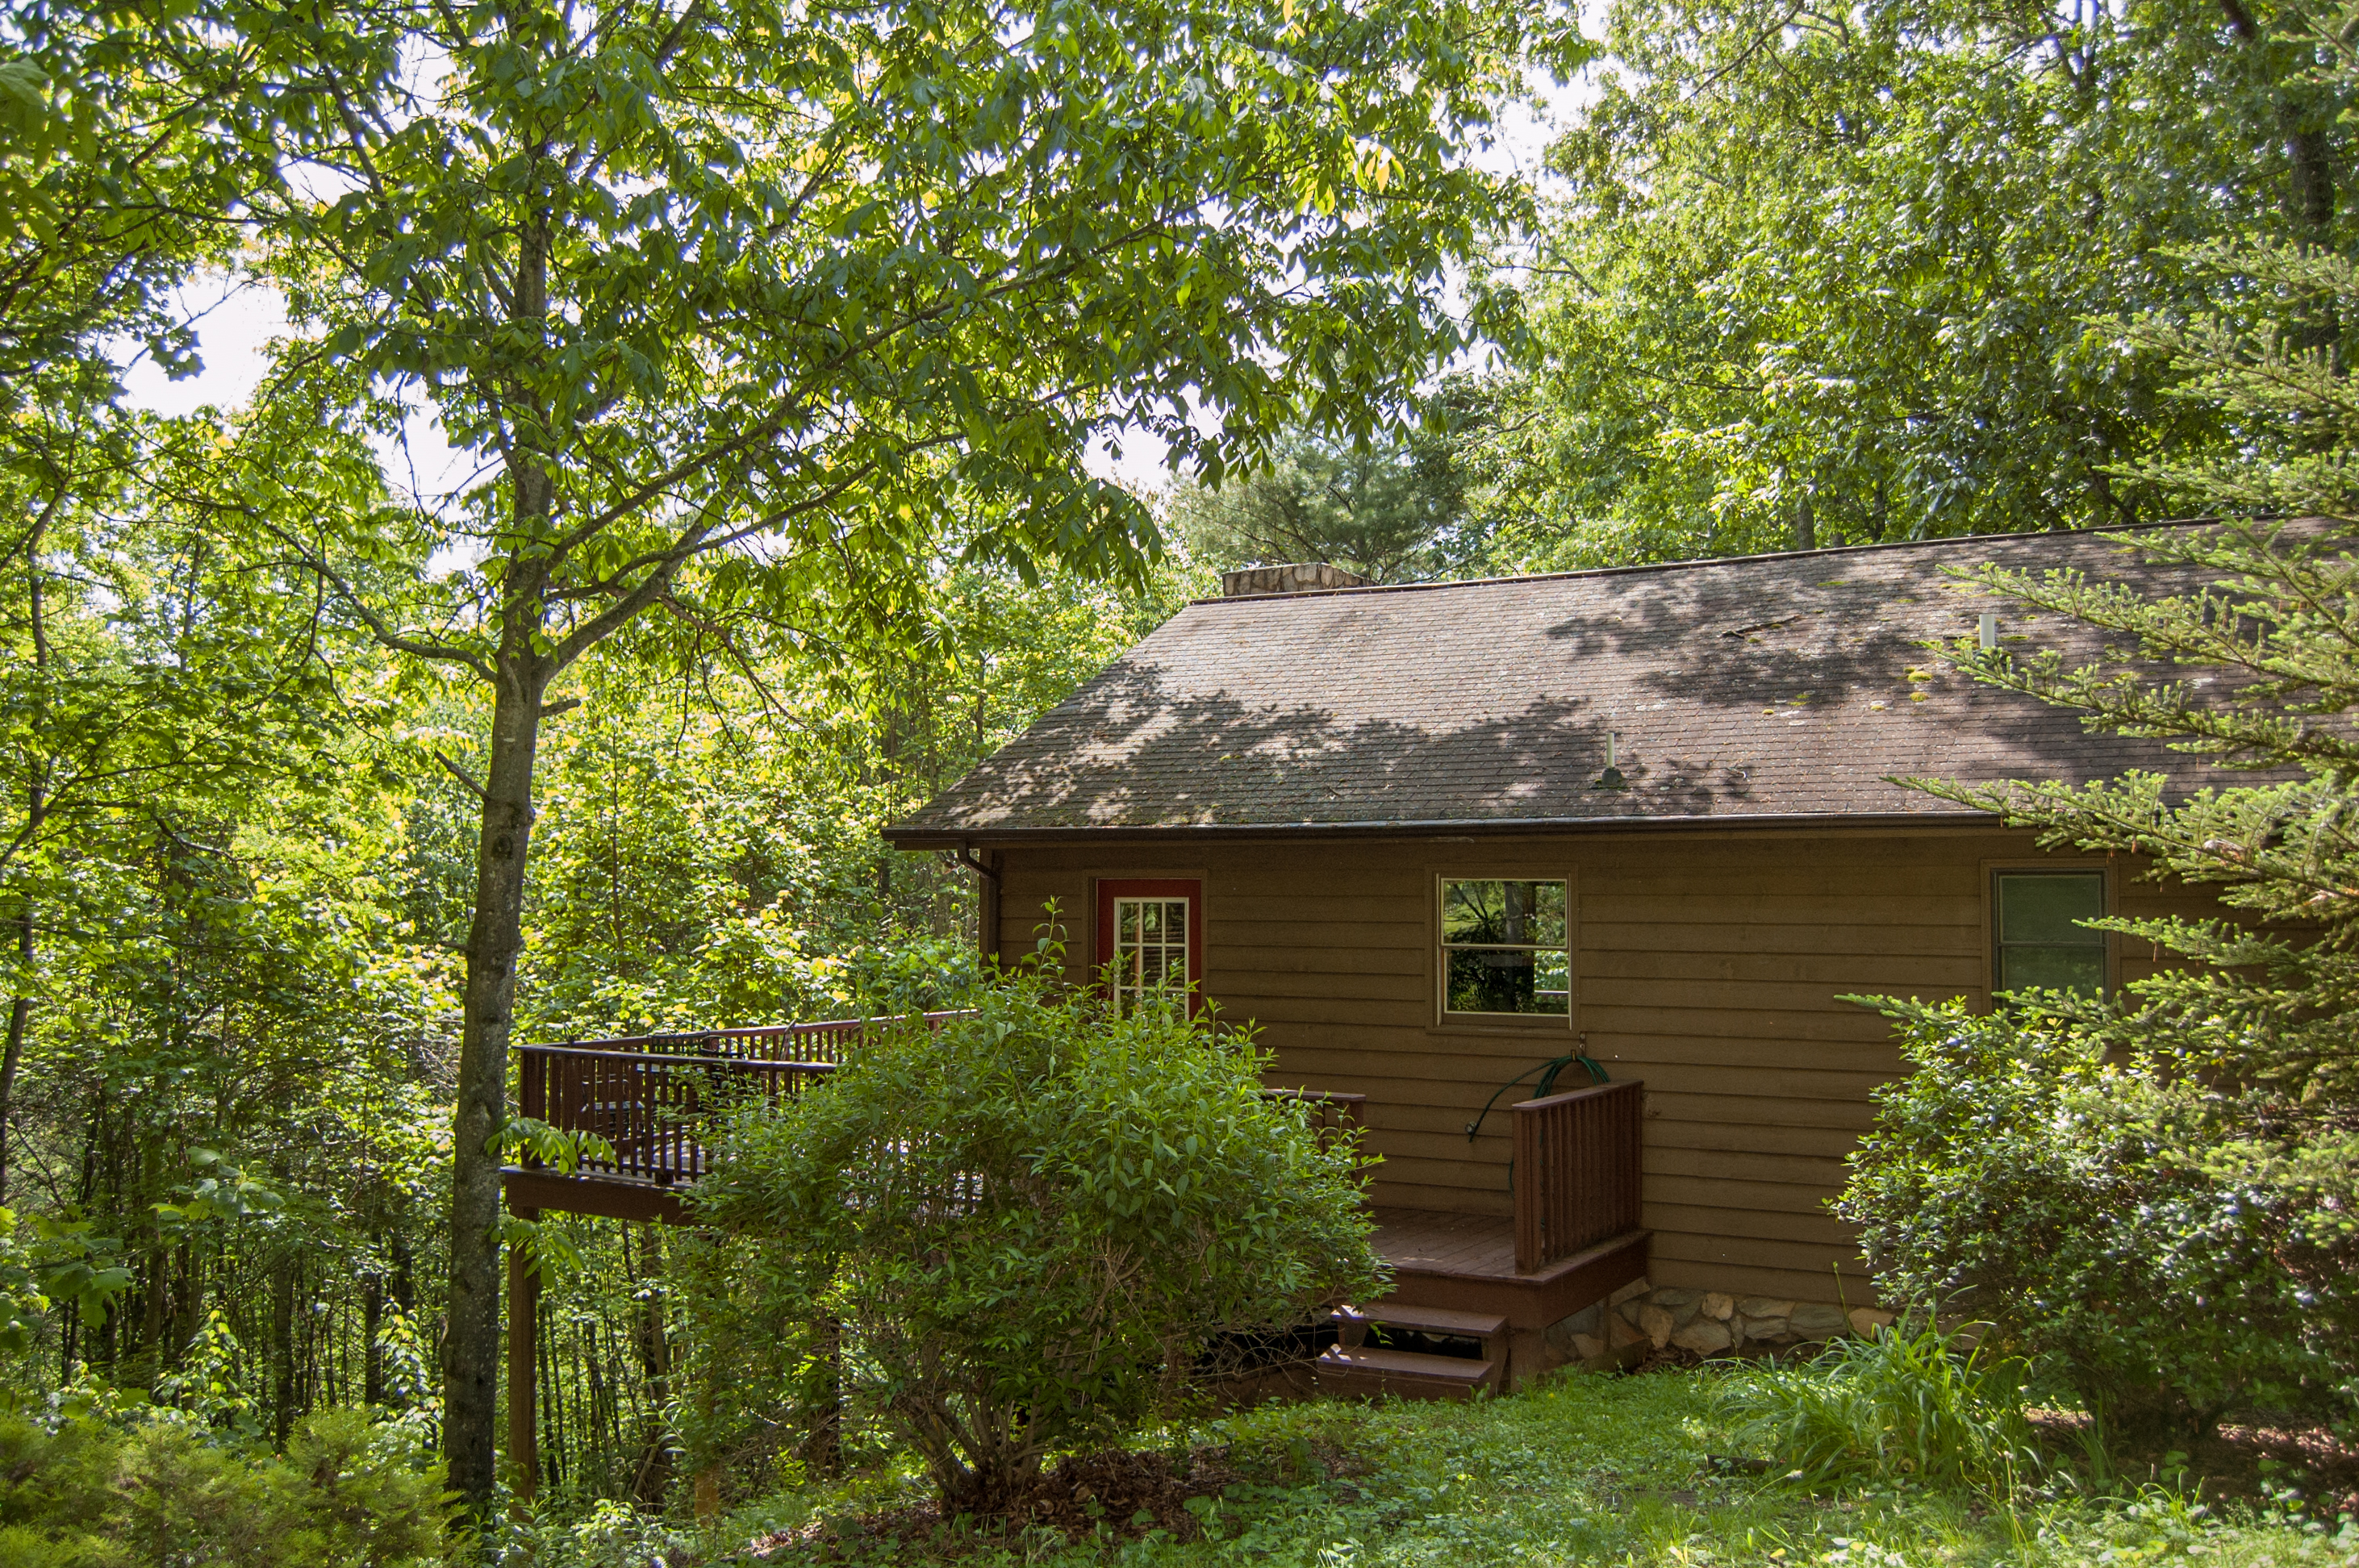 locati cabins nc cabin mountain blowing pet rock rentals friendly